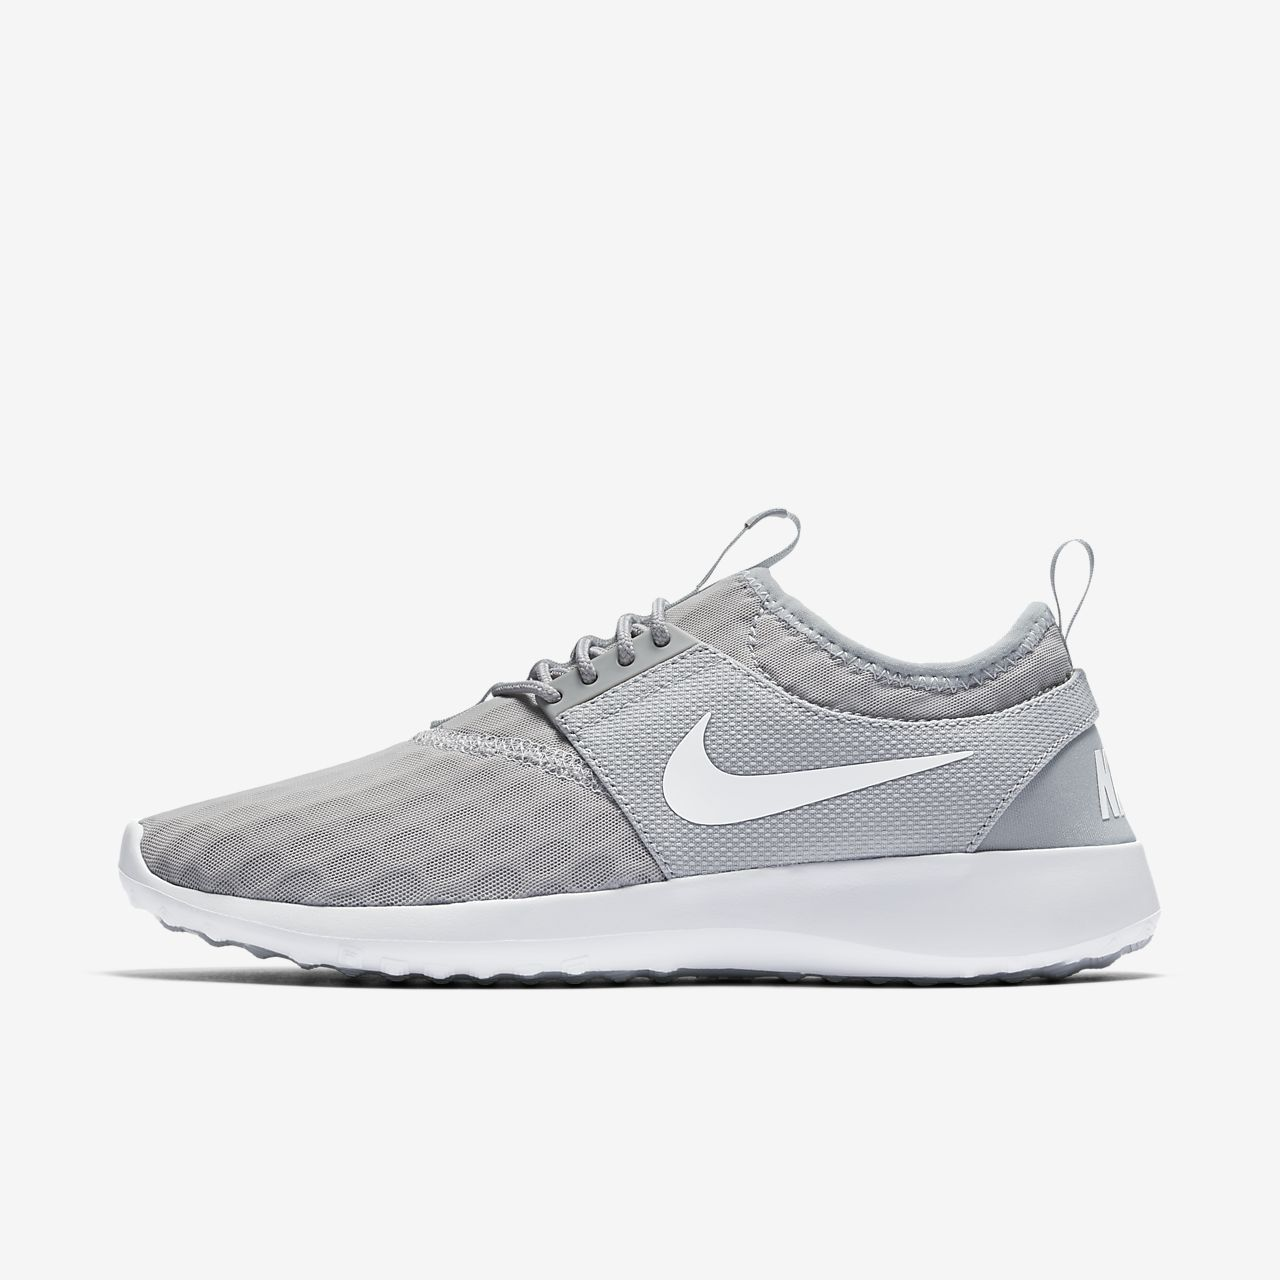 Nike Sportswear Juvenate Grey Womens Shoes Outlet UK